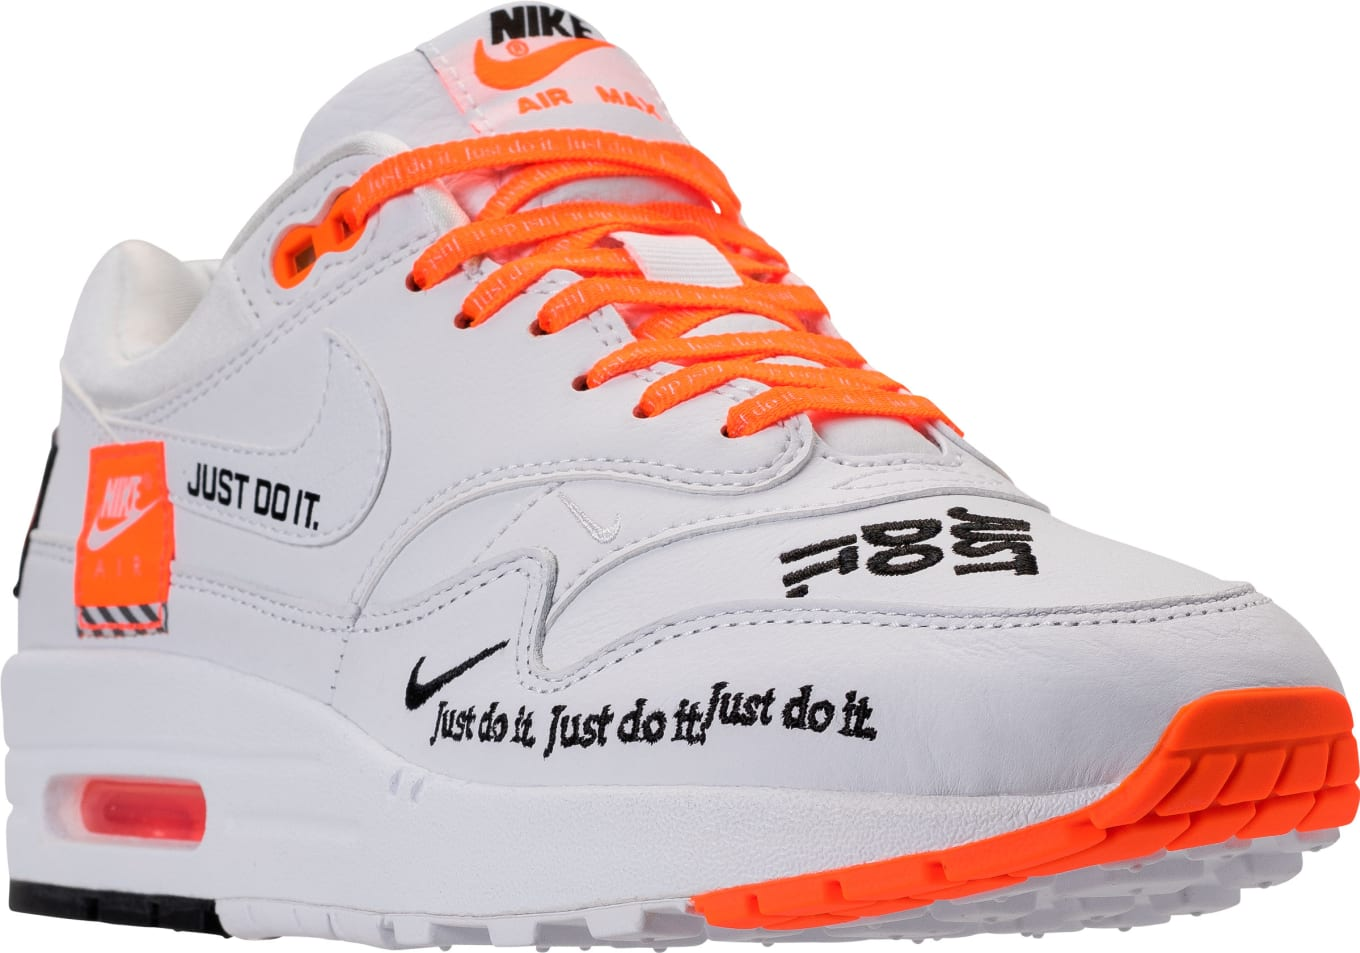 8c1b8b9acb7 Nike Air Max 1 Just Do It White Release Date 917691-100 | Sole Collector